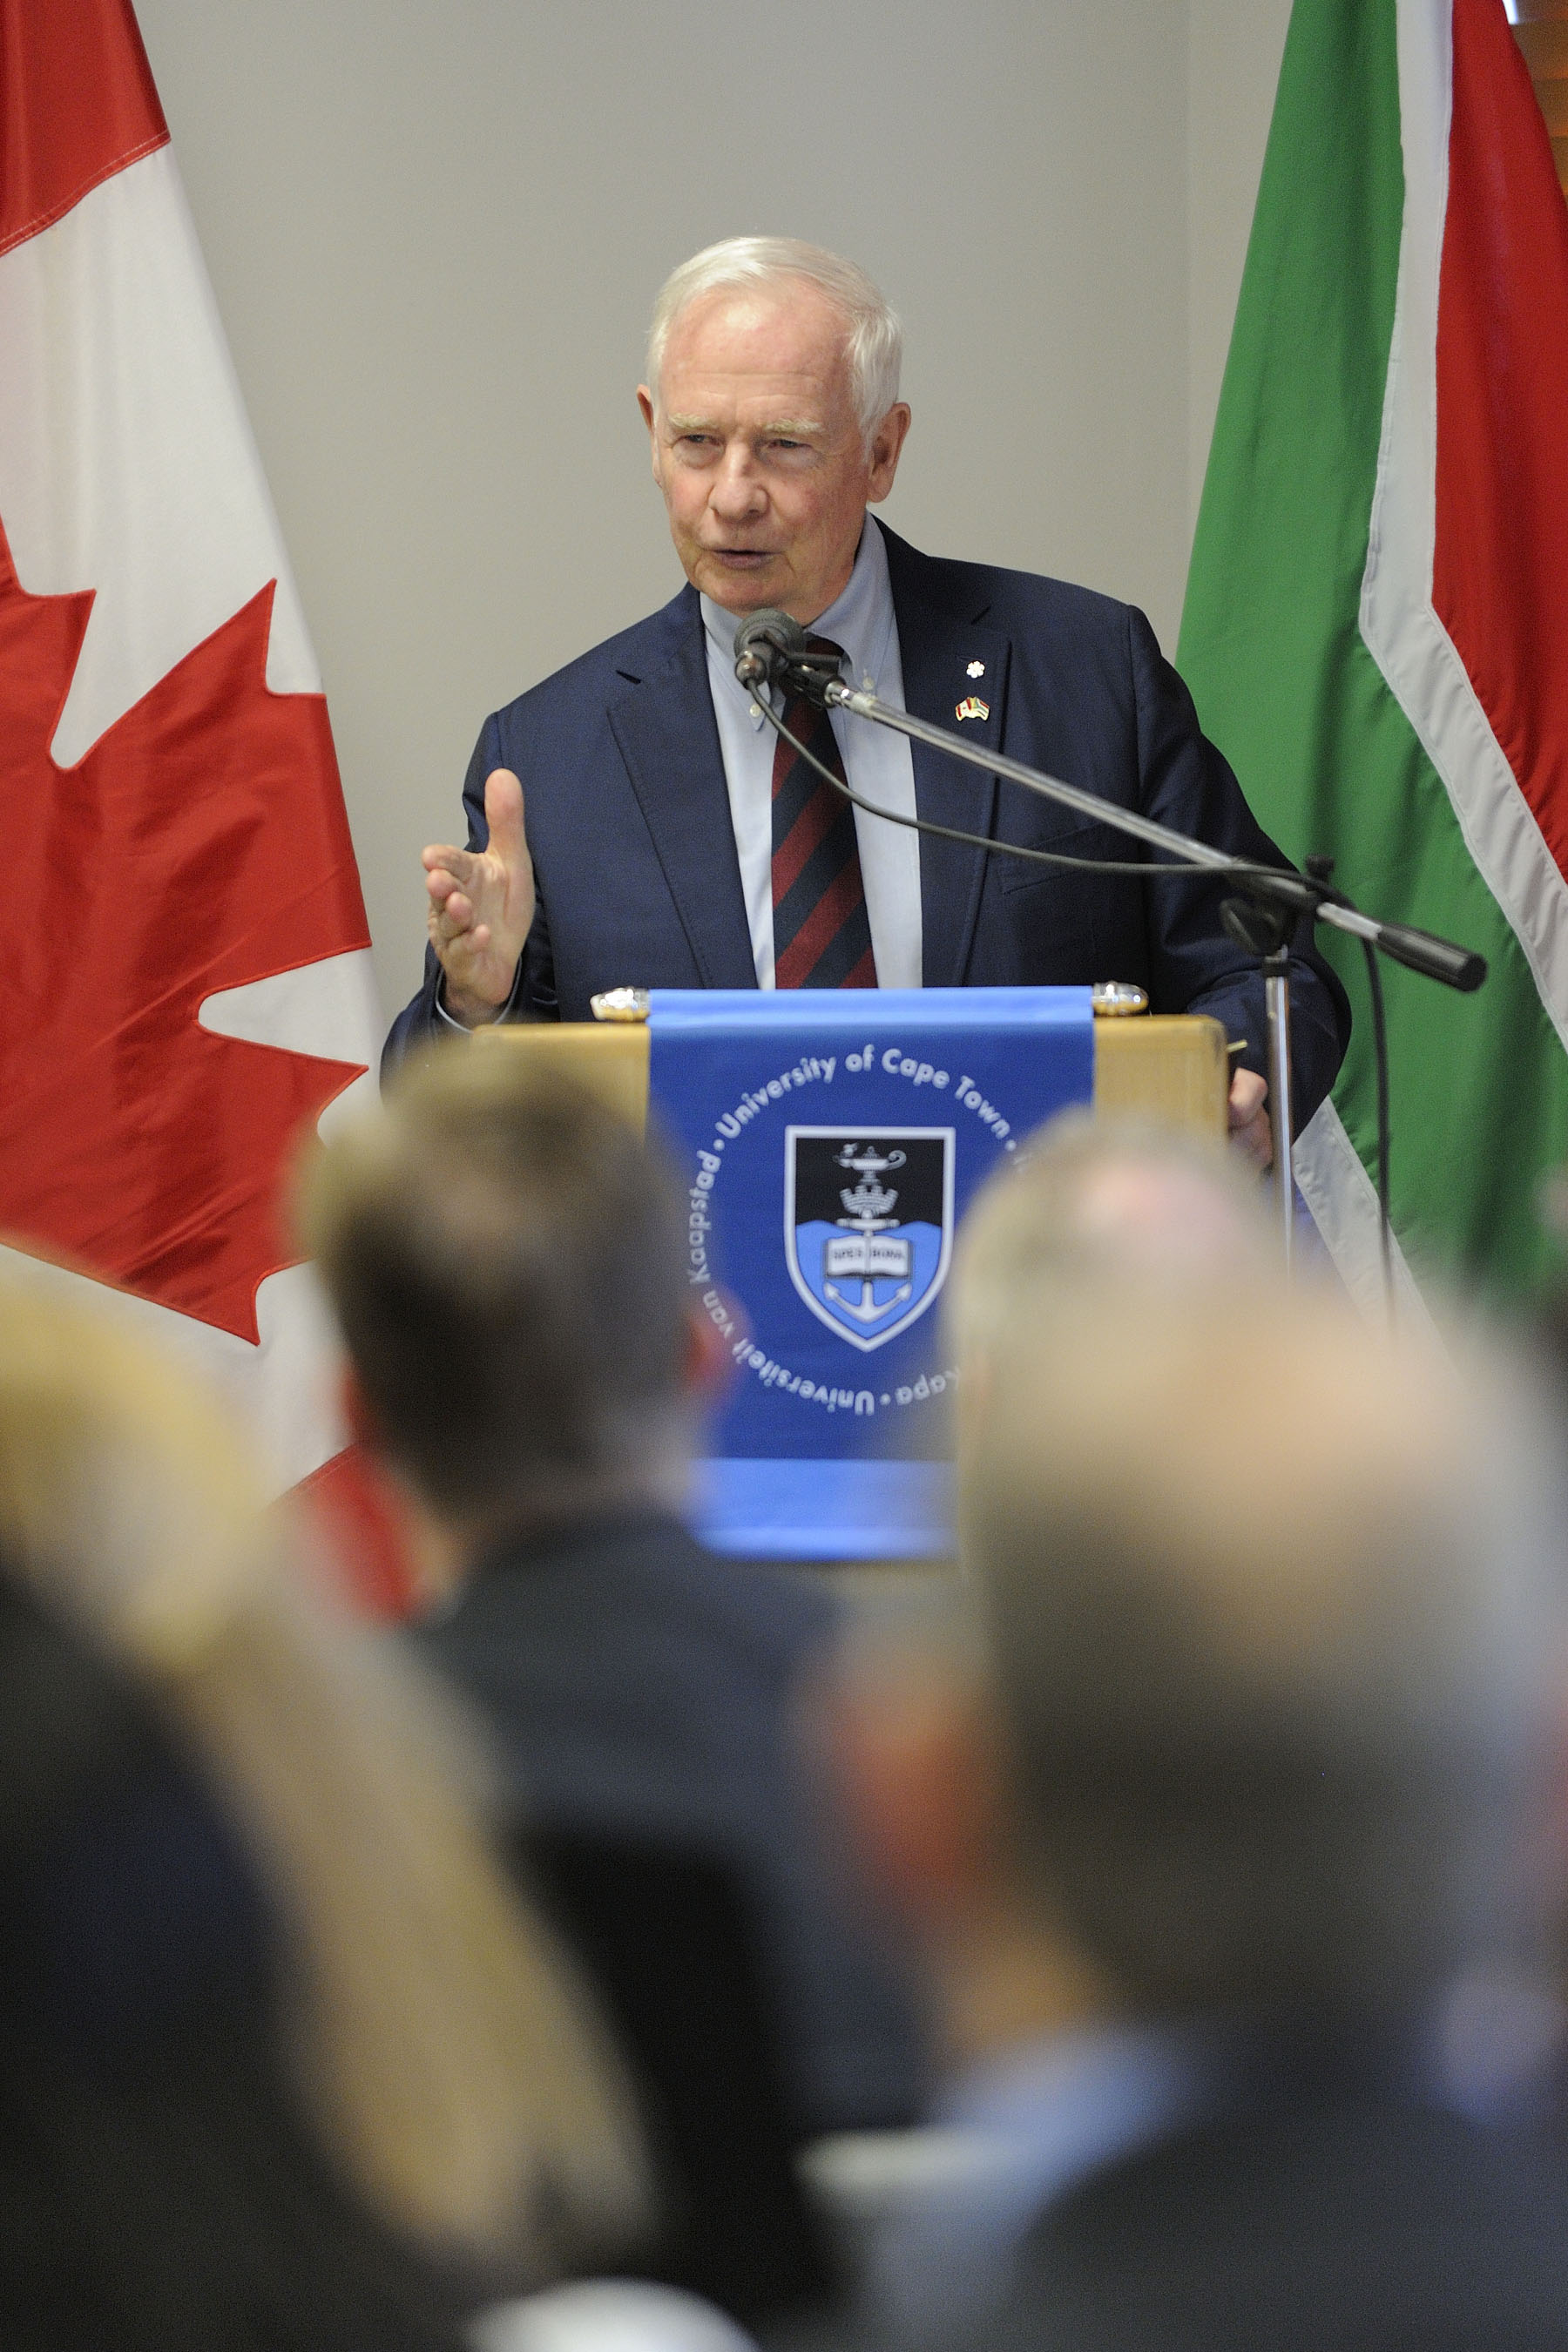 That afternoon, His Excellency delivered a keynote address at the University of Cape Town on the future co-operation between Canada and South Africa in physics and space exploration, as well as on education exchanges between universities and the private sector.